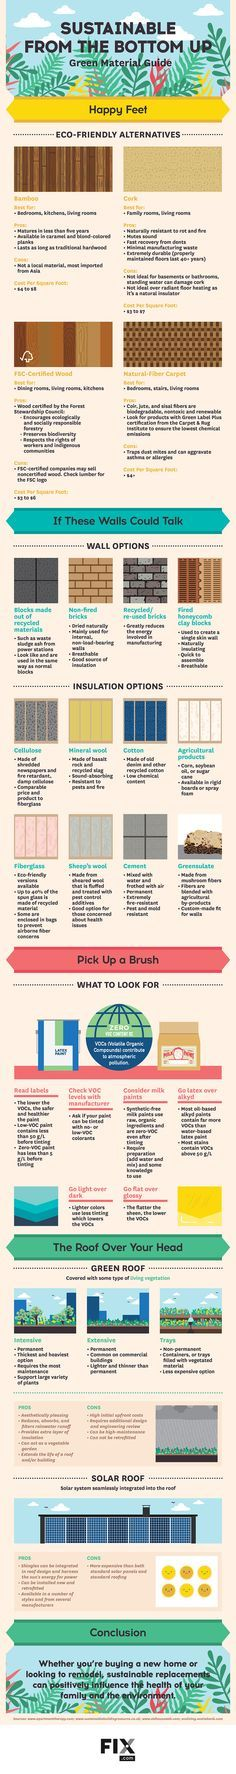 Use these eco-friendly materials in your walls, floor, roof and more for a greener home!